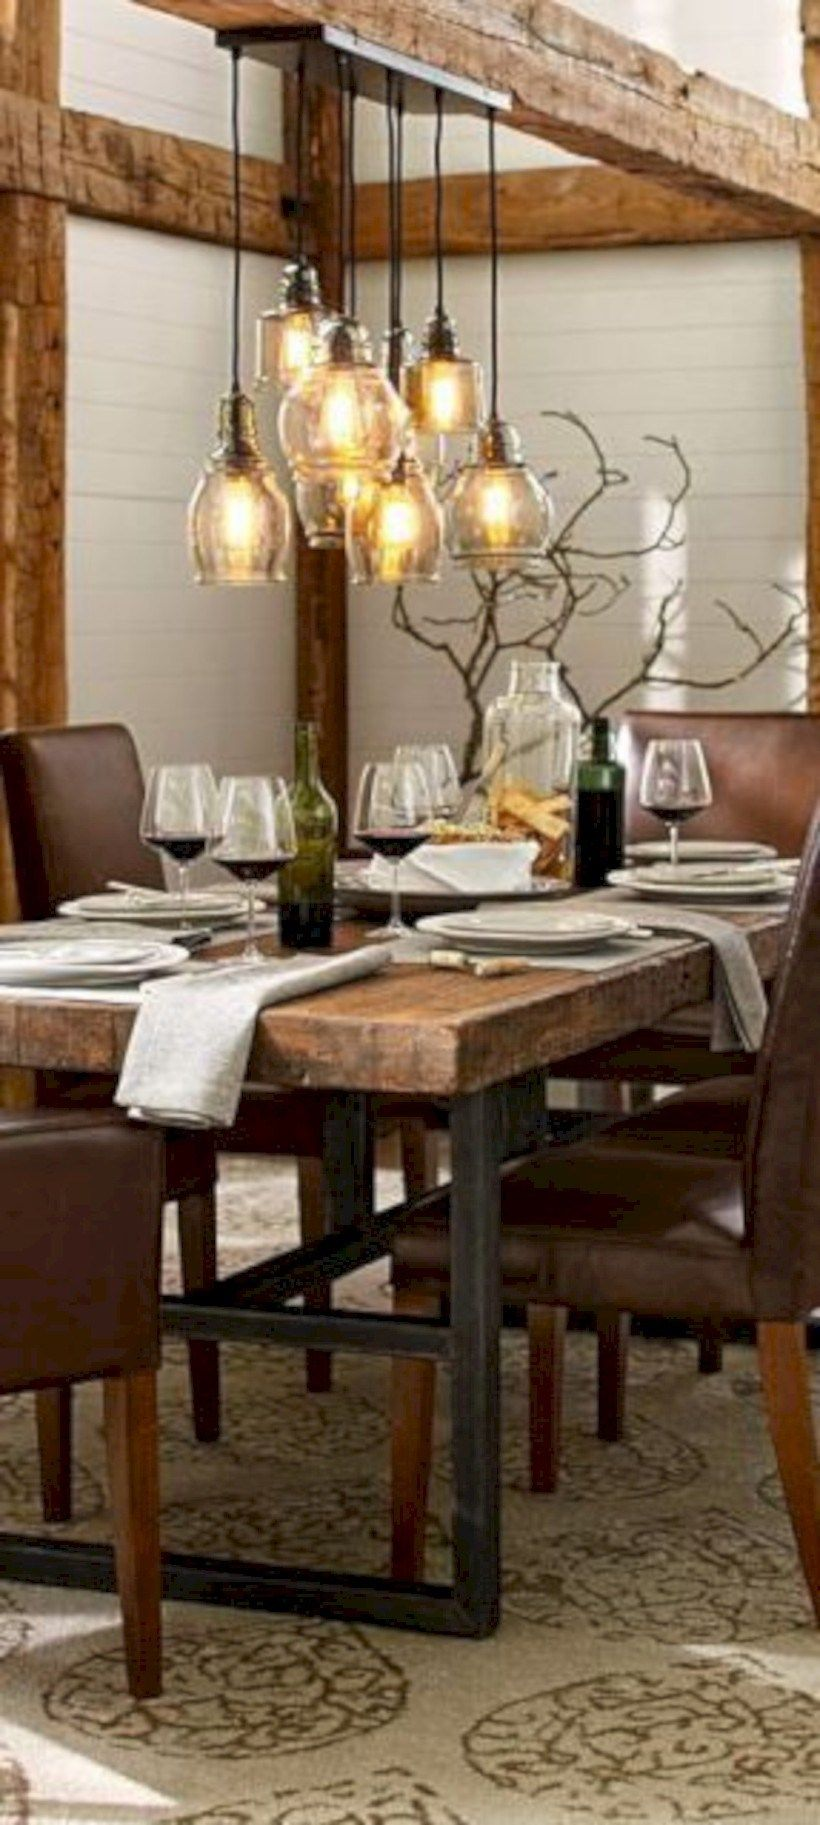 15 Timeless DIY Rustic for your Farmhouse Decor Dining